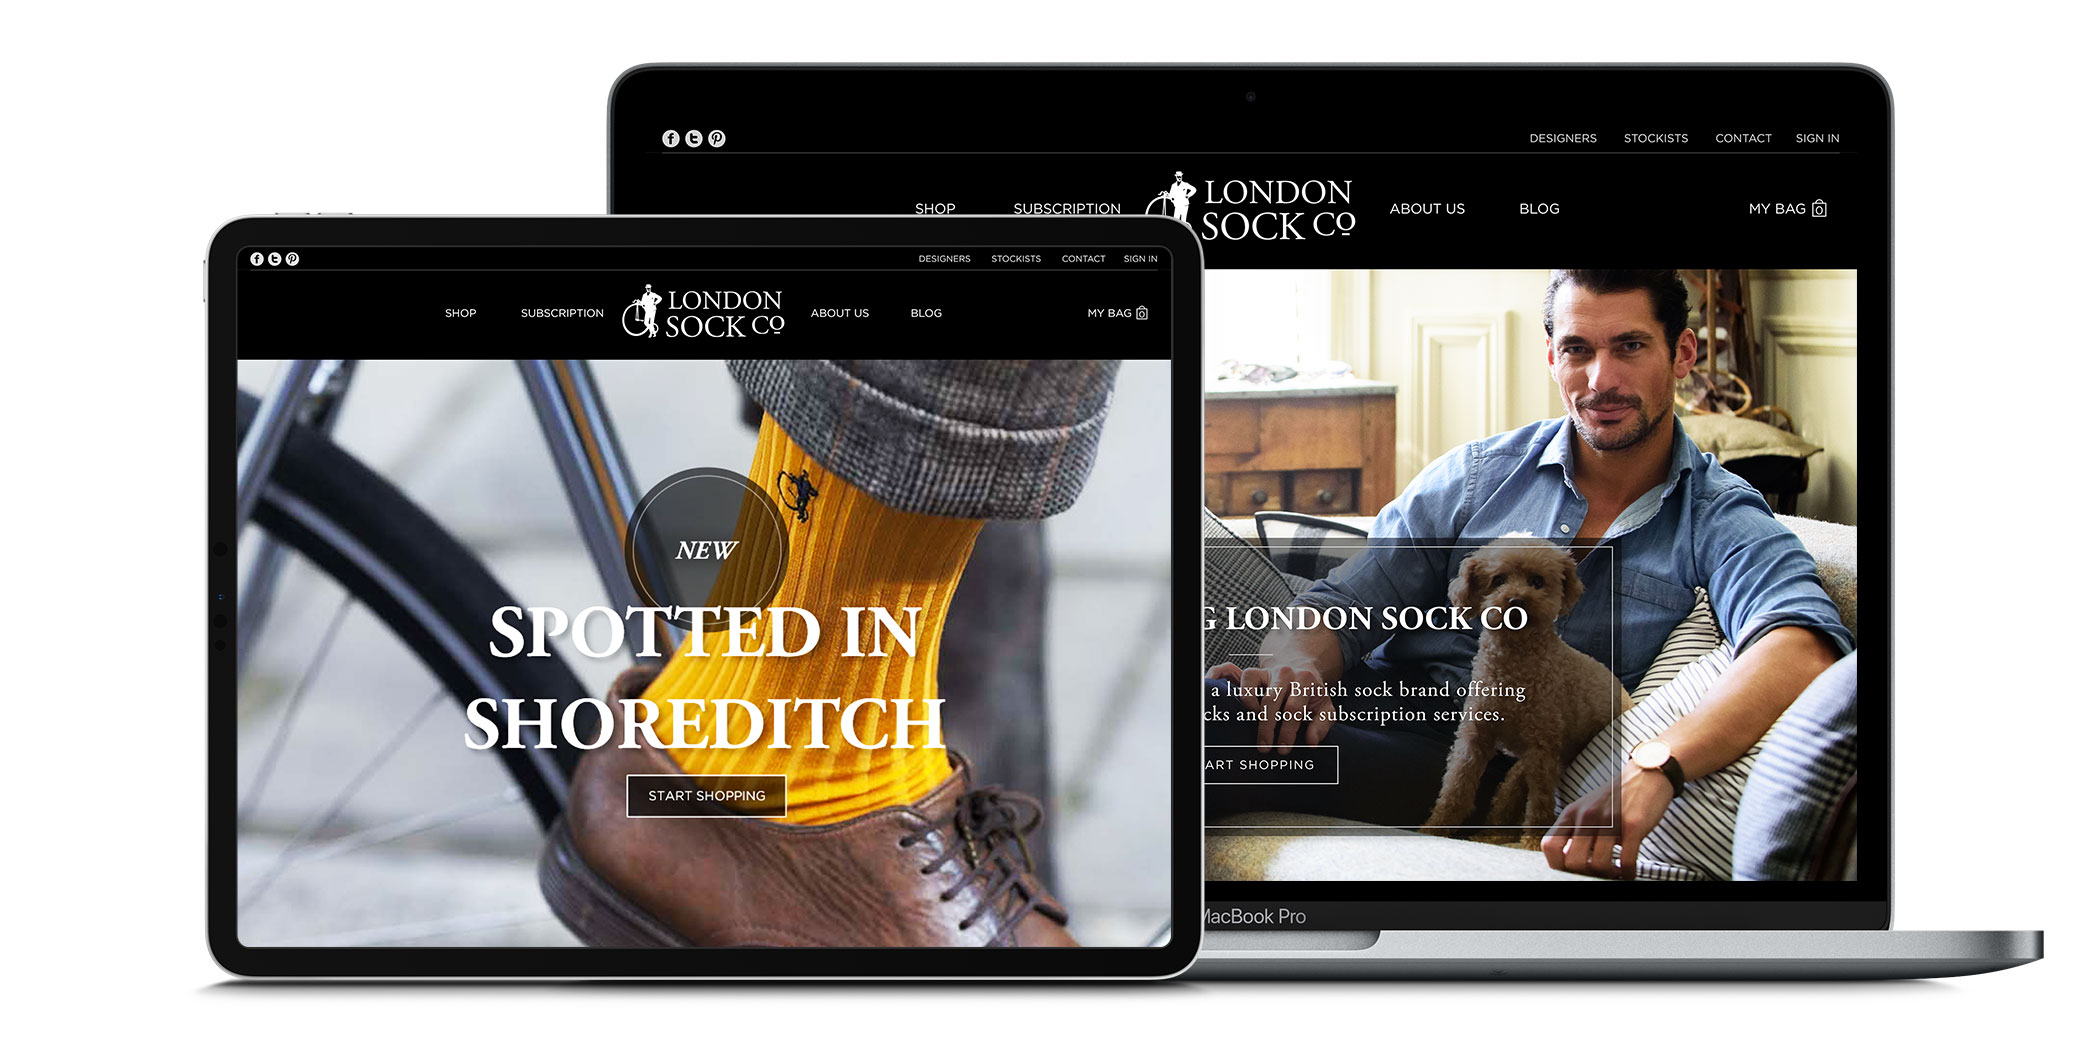 London Sock Company e-commerce website design shown on tablet